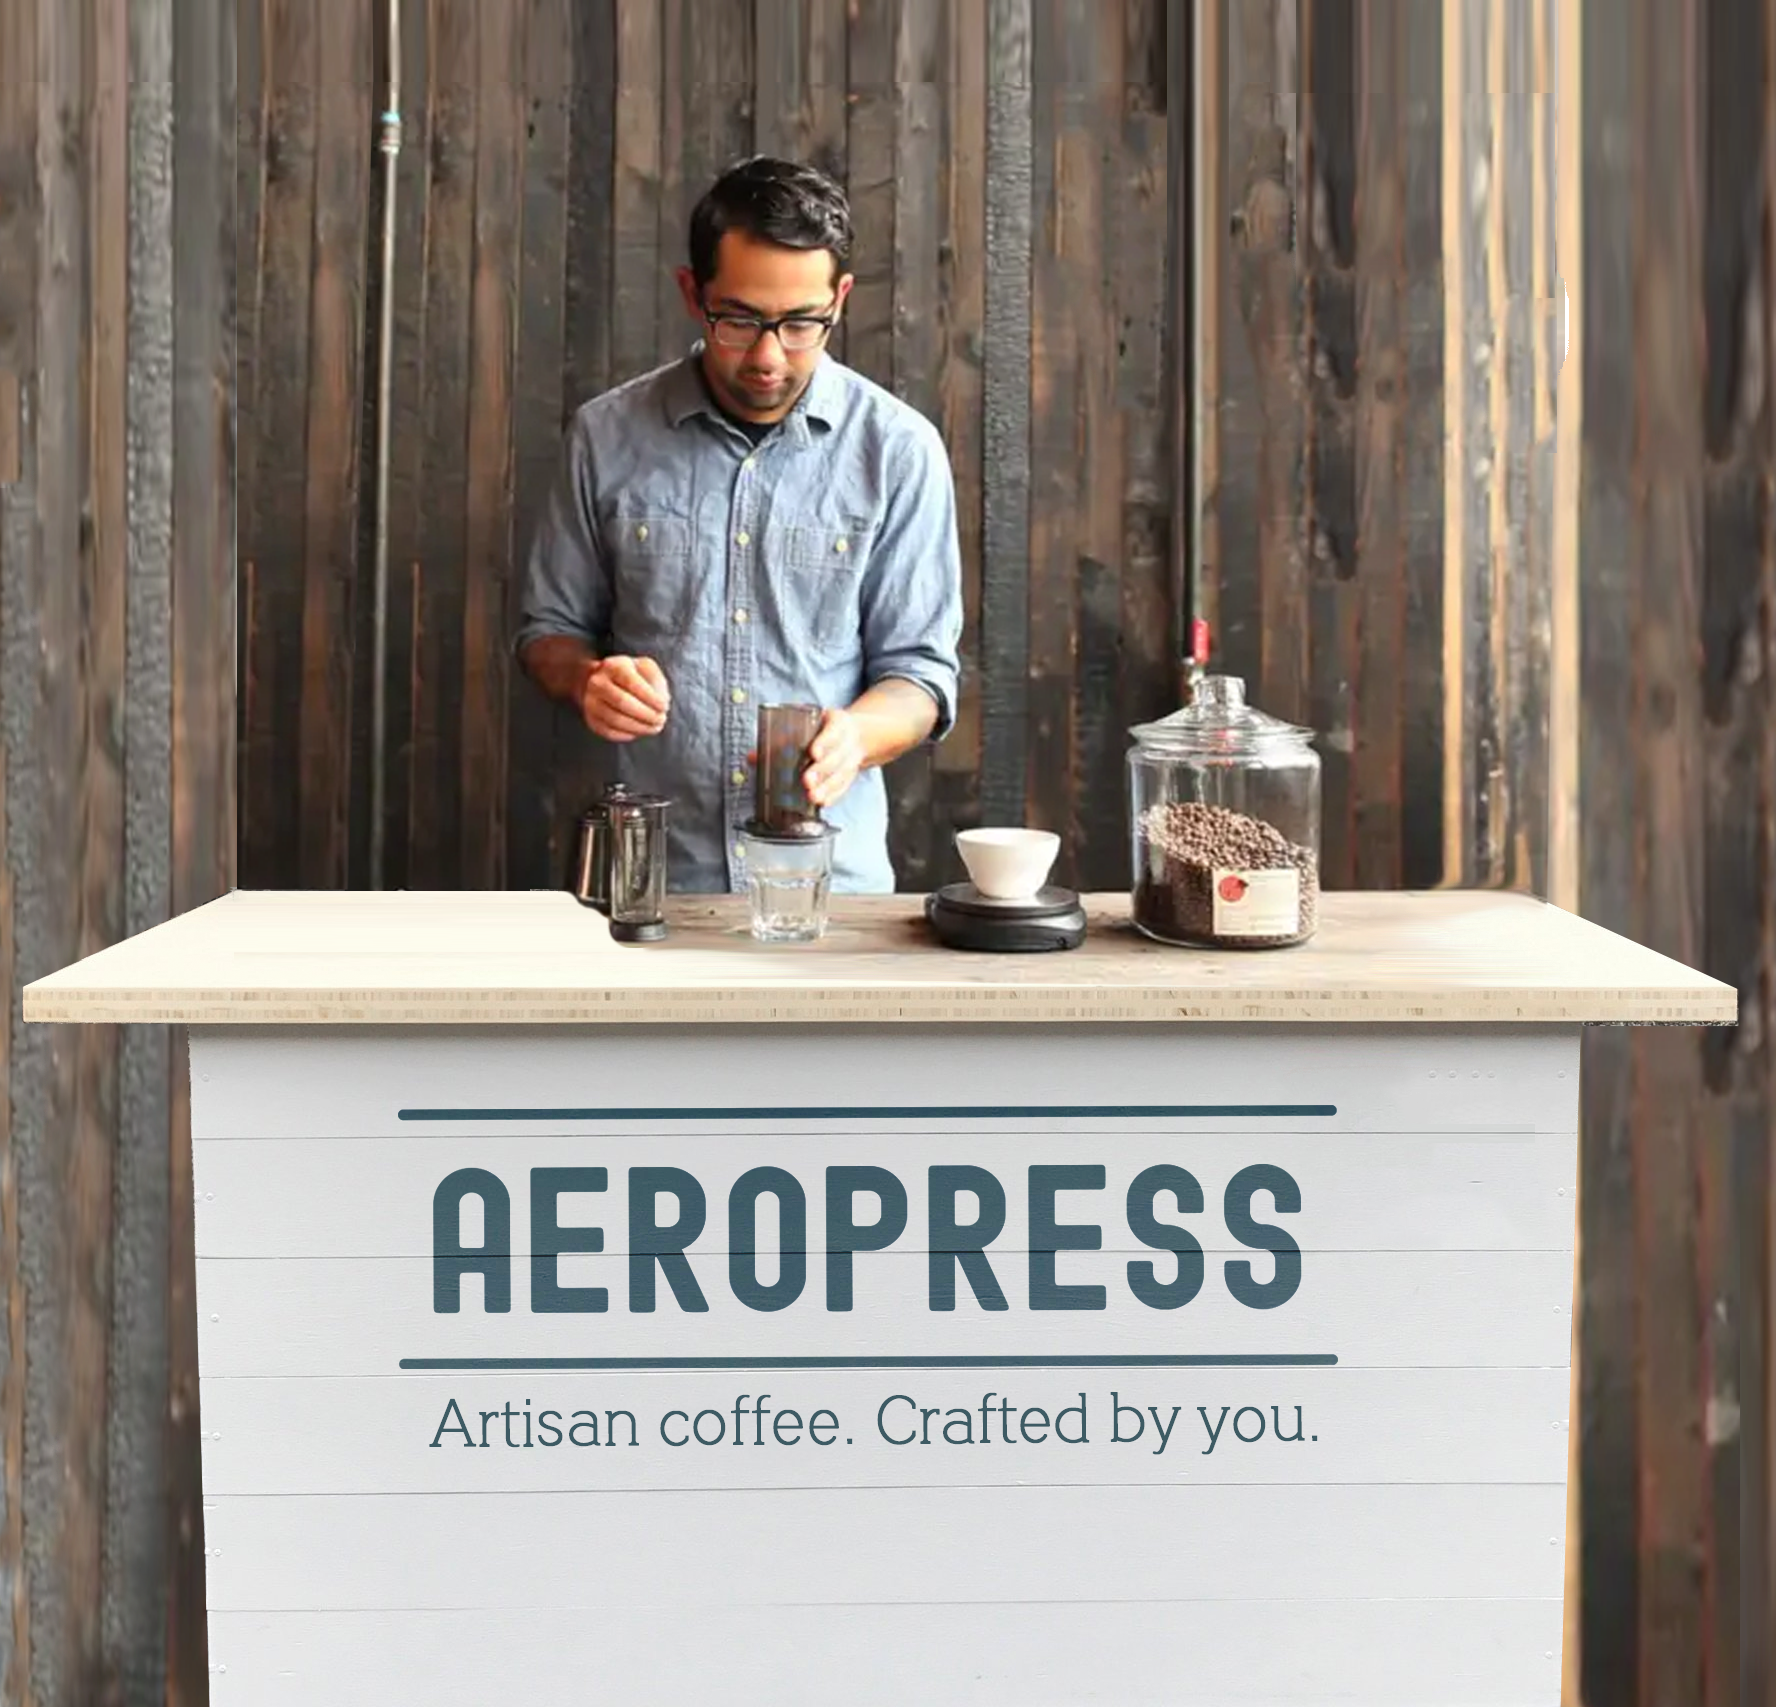 Pop-up barista counters to encourage the manual brewing curious to experiment. These would be stationed outside in locations where a pick-me-up is welcome, like shopping malls.